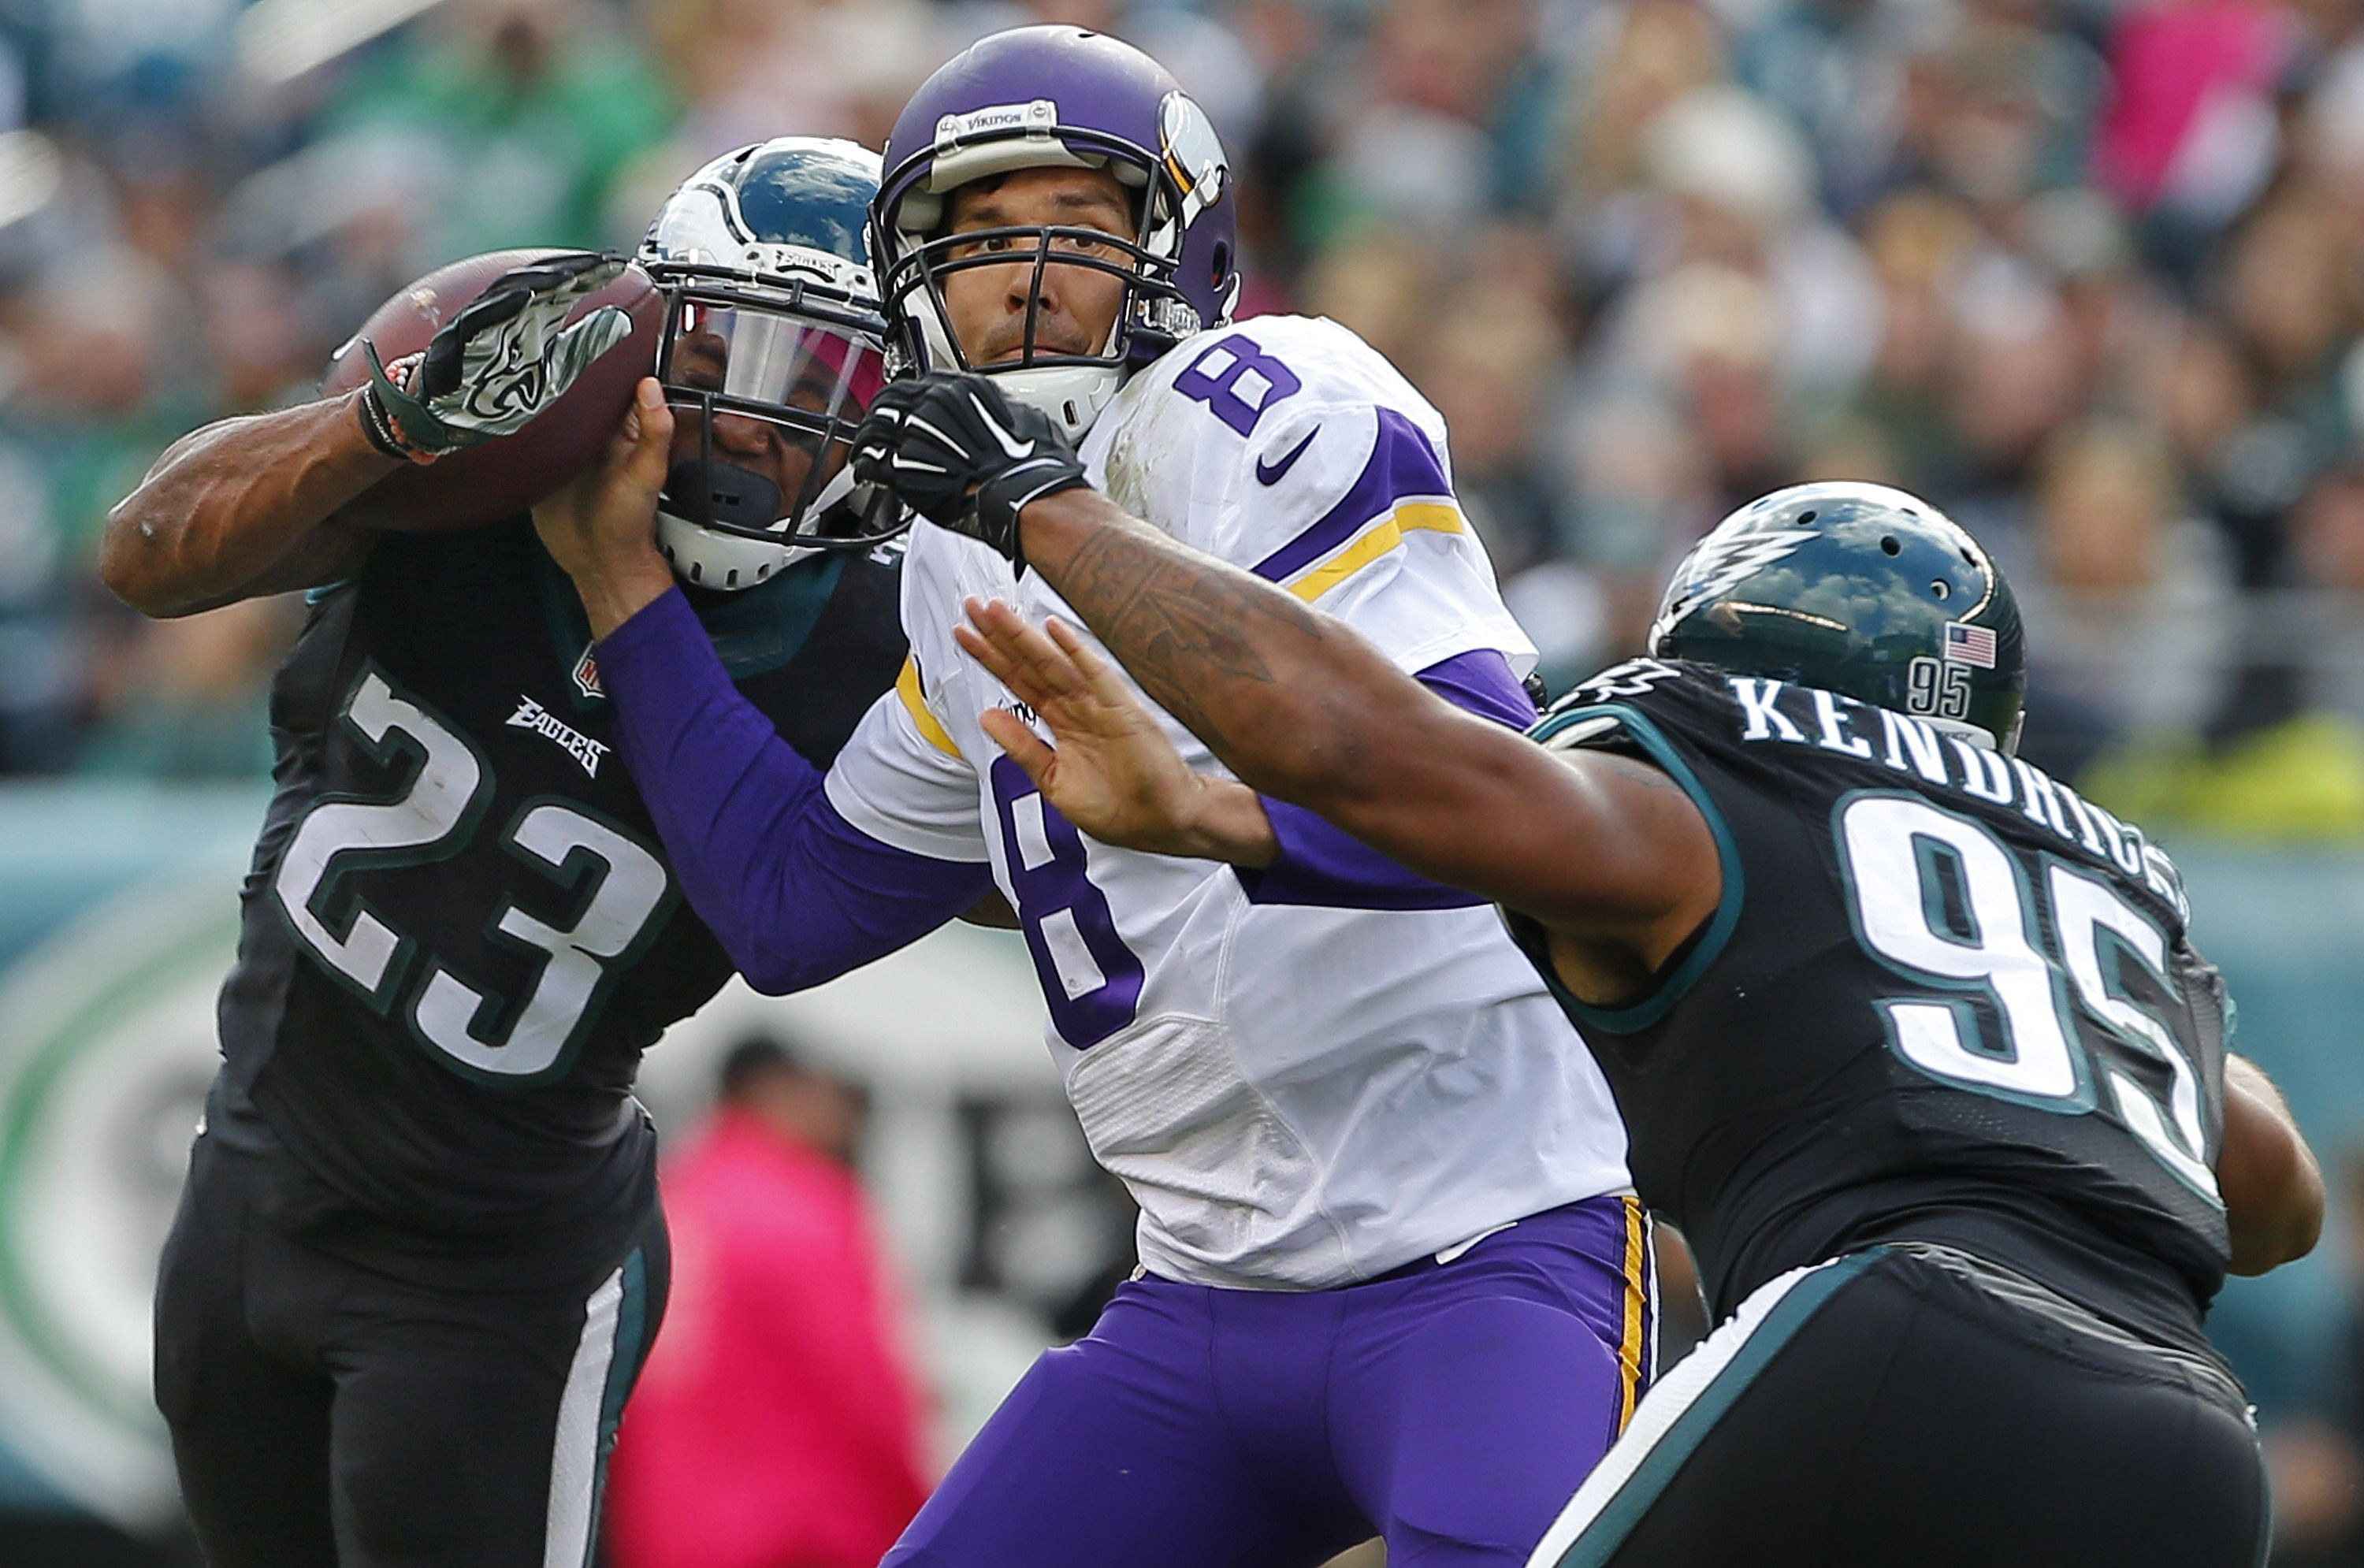 PHILADELPHIA, PA - OCTOBER 23: Rodney McLeod #23 of the Philadelphia Eagles forces the fumble on Sam Bradford #8 of the Minnesota Vikings as Mychal Kendricks #95 of the Philadelphia Eagles pressures in the second quarter during a NFL game at Lincoln Financial Field on October 23, 2016 in Philadelphia, Pennsylvania. The Eagles defeated the Vikings 21-10.  (3000×1990)